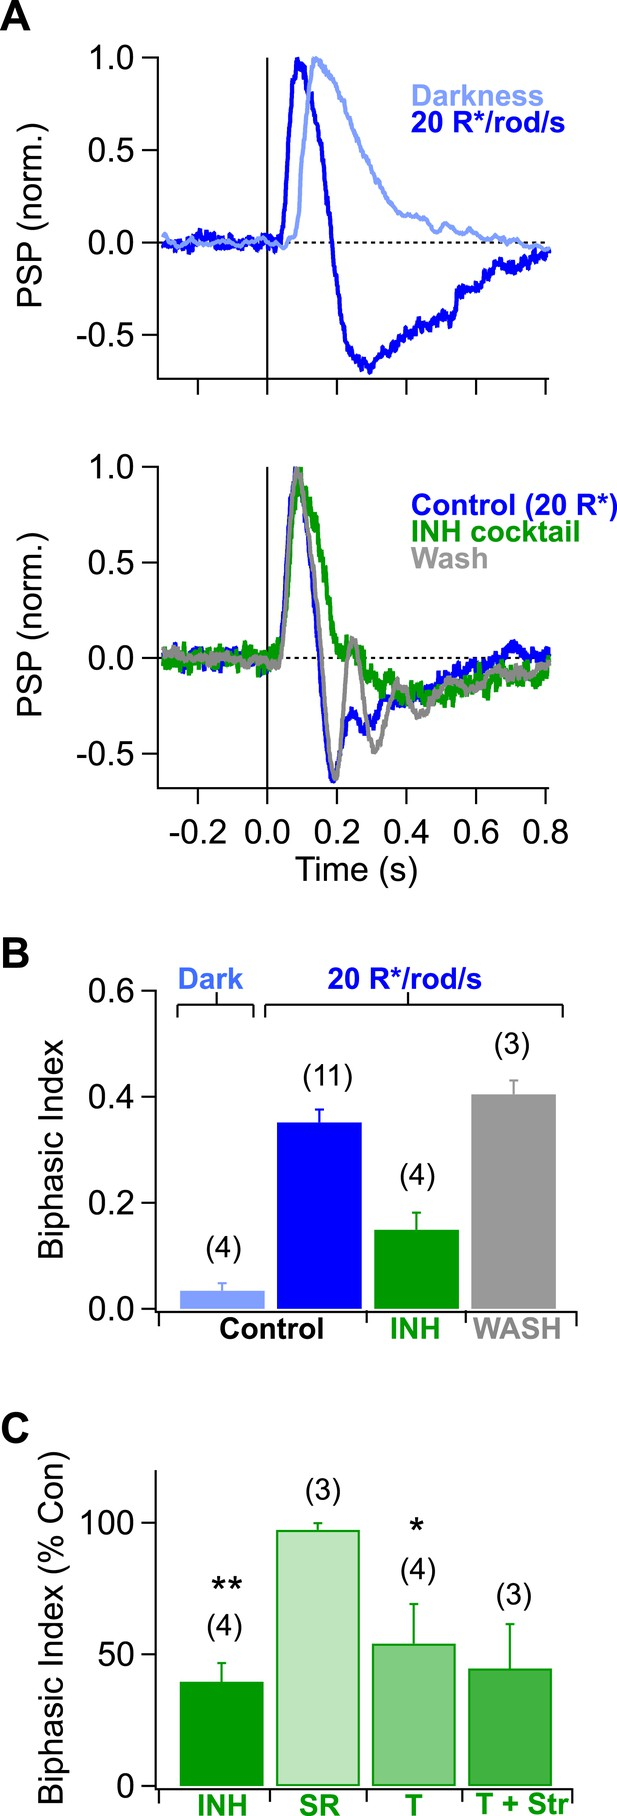 A Simple Retinal Mechanism Contributes To Perceptual Interactions